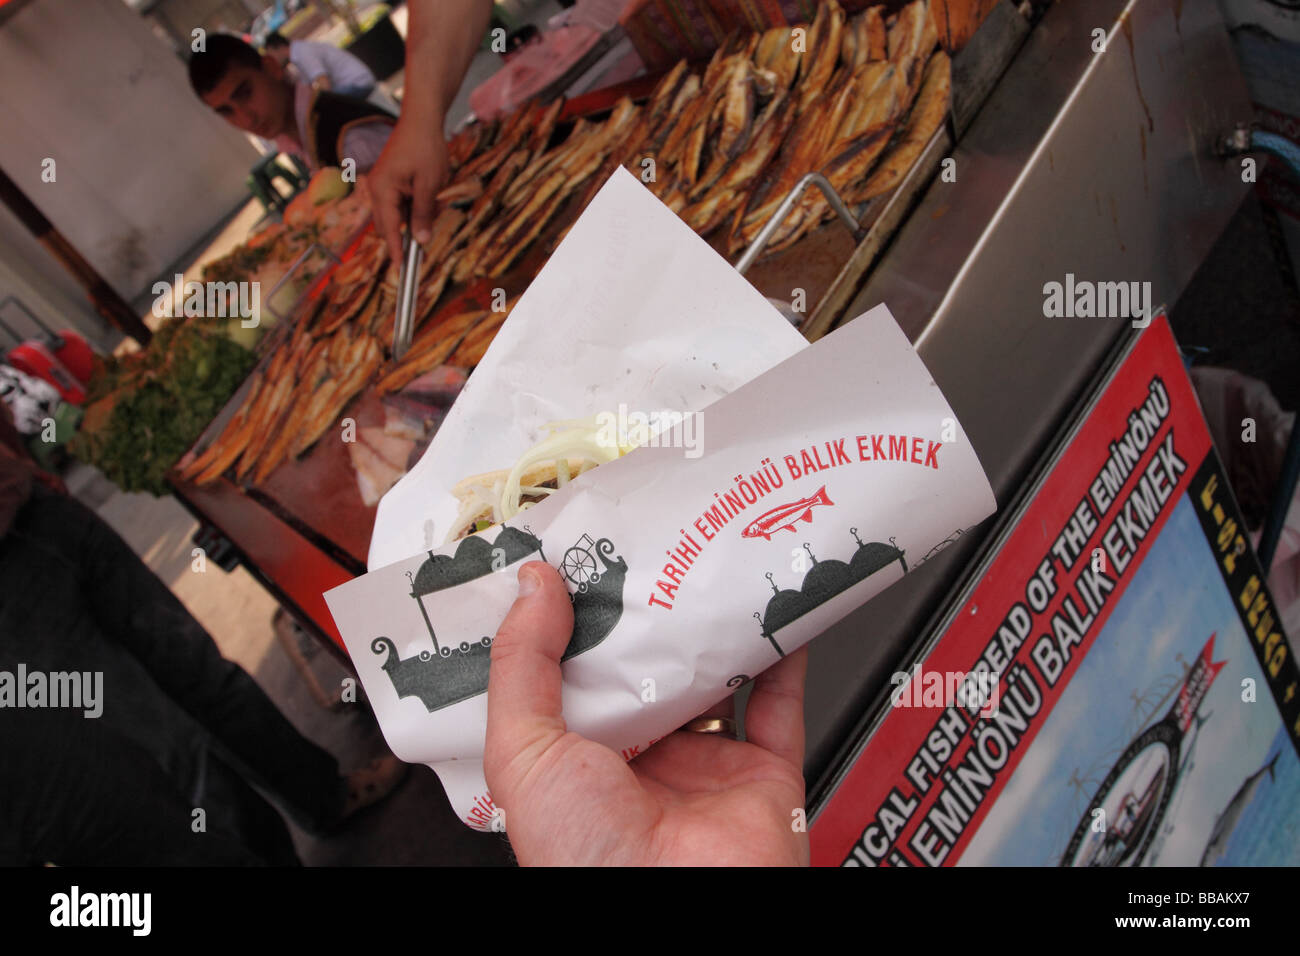 Turkey Istanbul fried fish food stall customer buying a fried fish sandwich known as Balik Ekmek on the waterfront - Stock Image